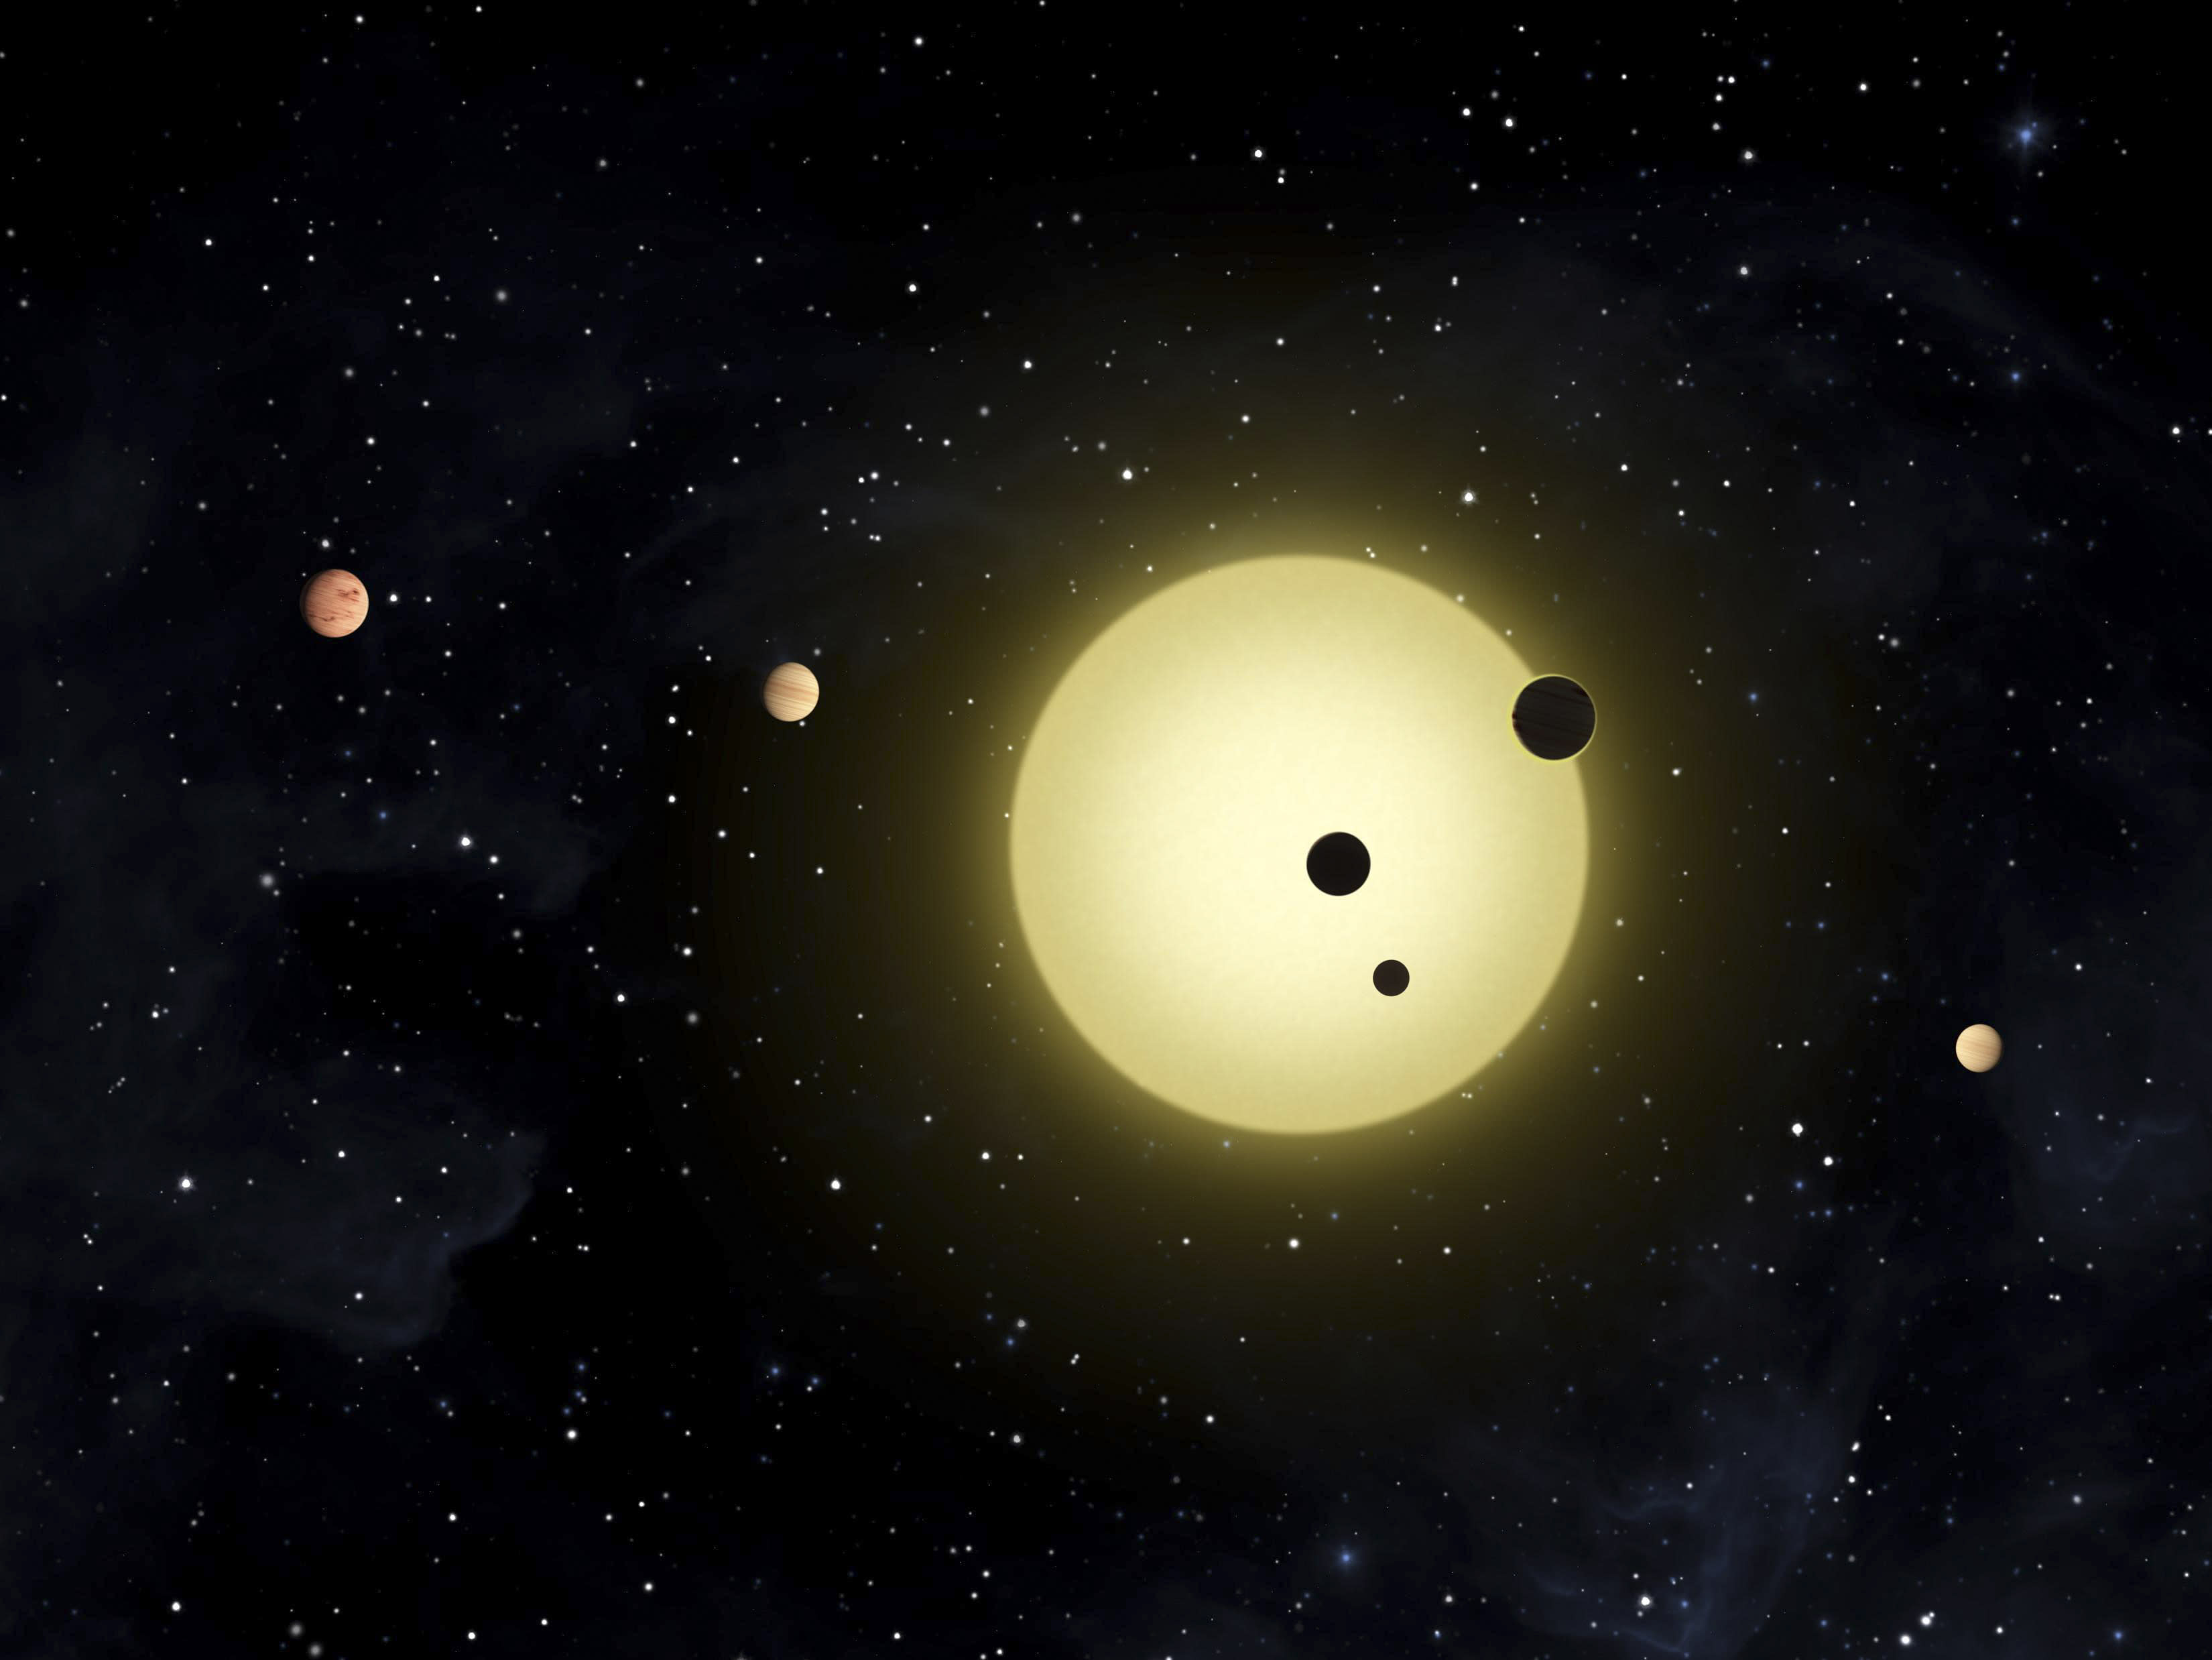 In this artist's conception released by NASA February 2, 2011, Kepler-11 is a sun-like star around which six planets orbit. At times, two or more planets pass in front of the star at once, as shown in a simultaneous transit of three planets observed by NASA's Kepler spacecraft on August 26, 2010. REUTERS/Tim Pyle/NASA/Handout